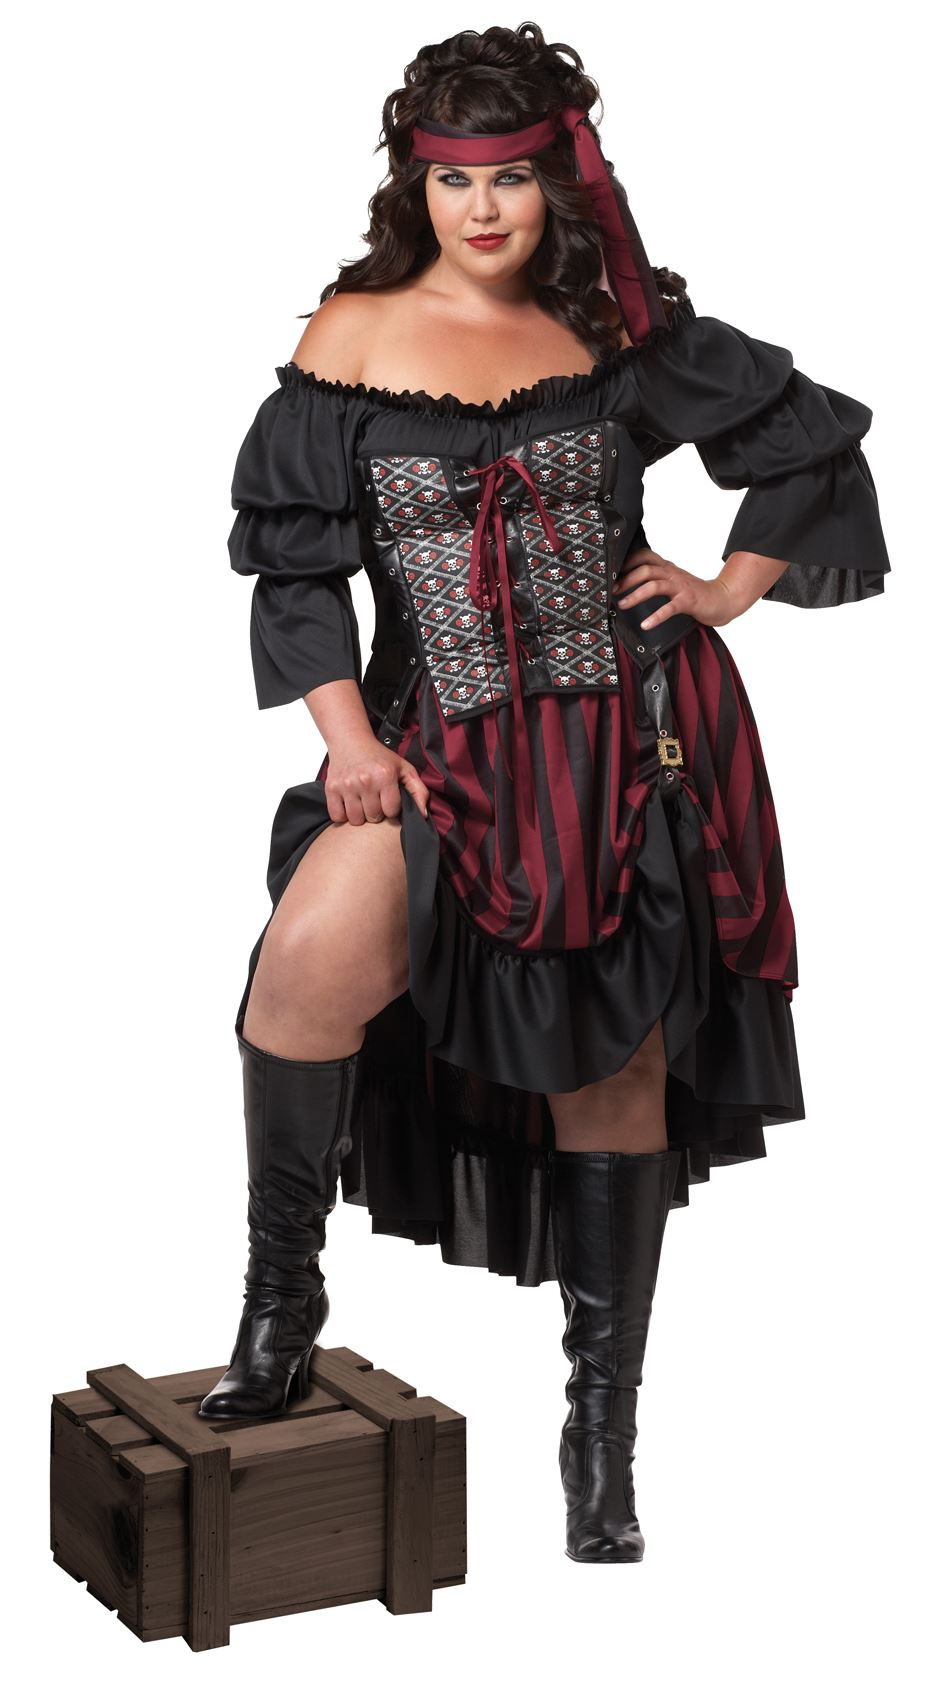 f14a71f615a05 Plus Pirate Wench Women Halloween Costume Sc 1 St The Costume Land